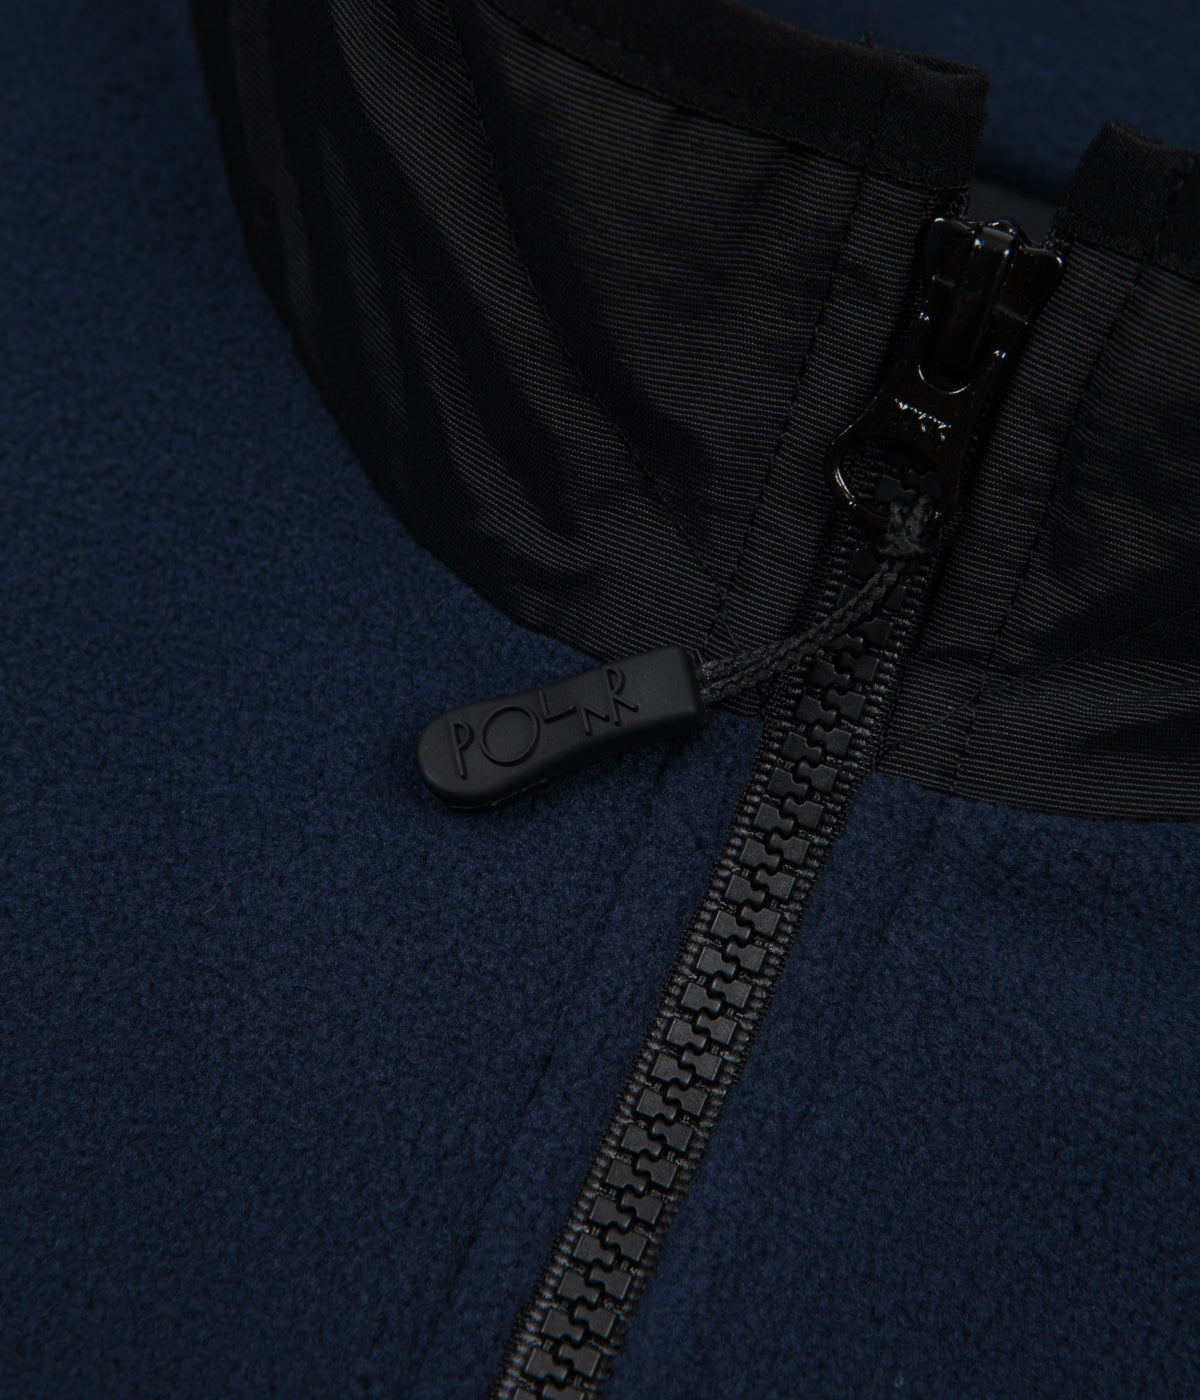 Polar Gonzalez Fleece Jacket - Black / Obsidian Blue